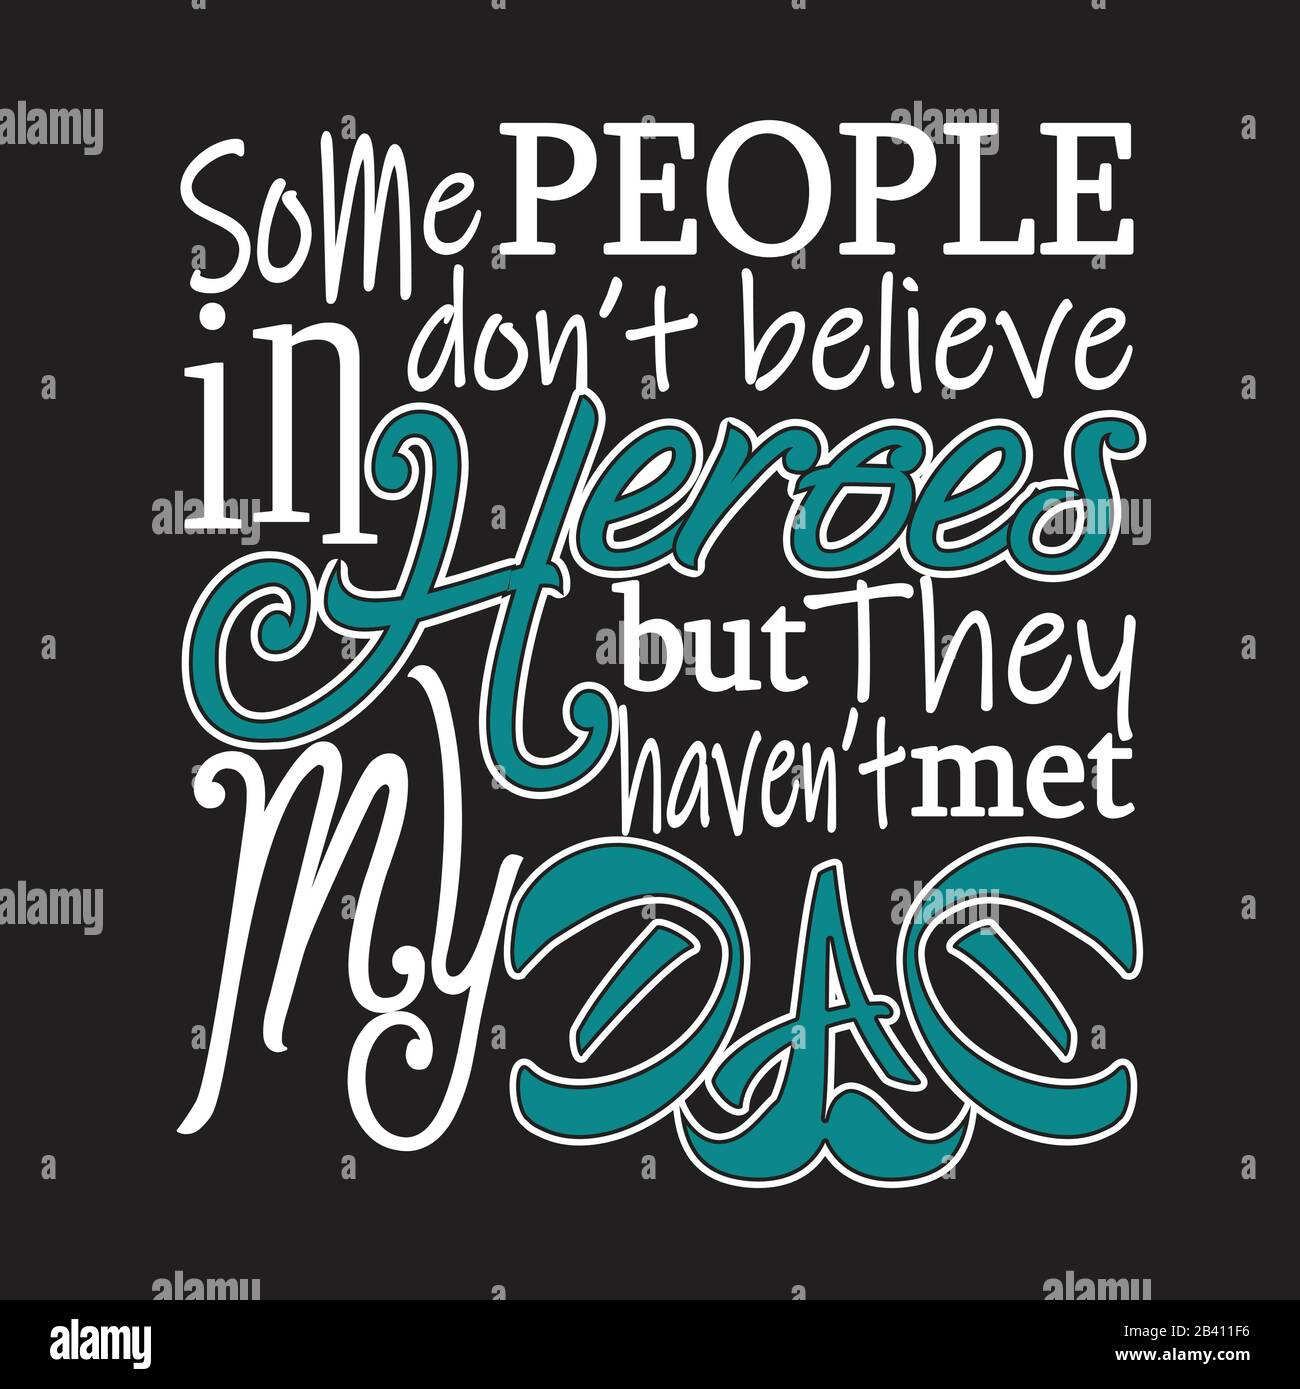 Father Day Quotes And Slogan Good For T Shirt Some People Don T Believe In Heroes But They Haven T Met My Dad Stock Vector Image Art Alamy